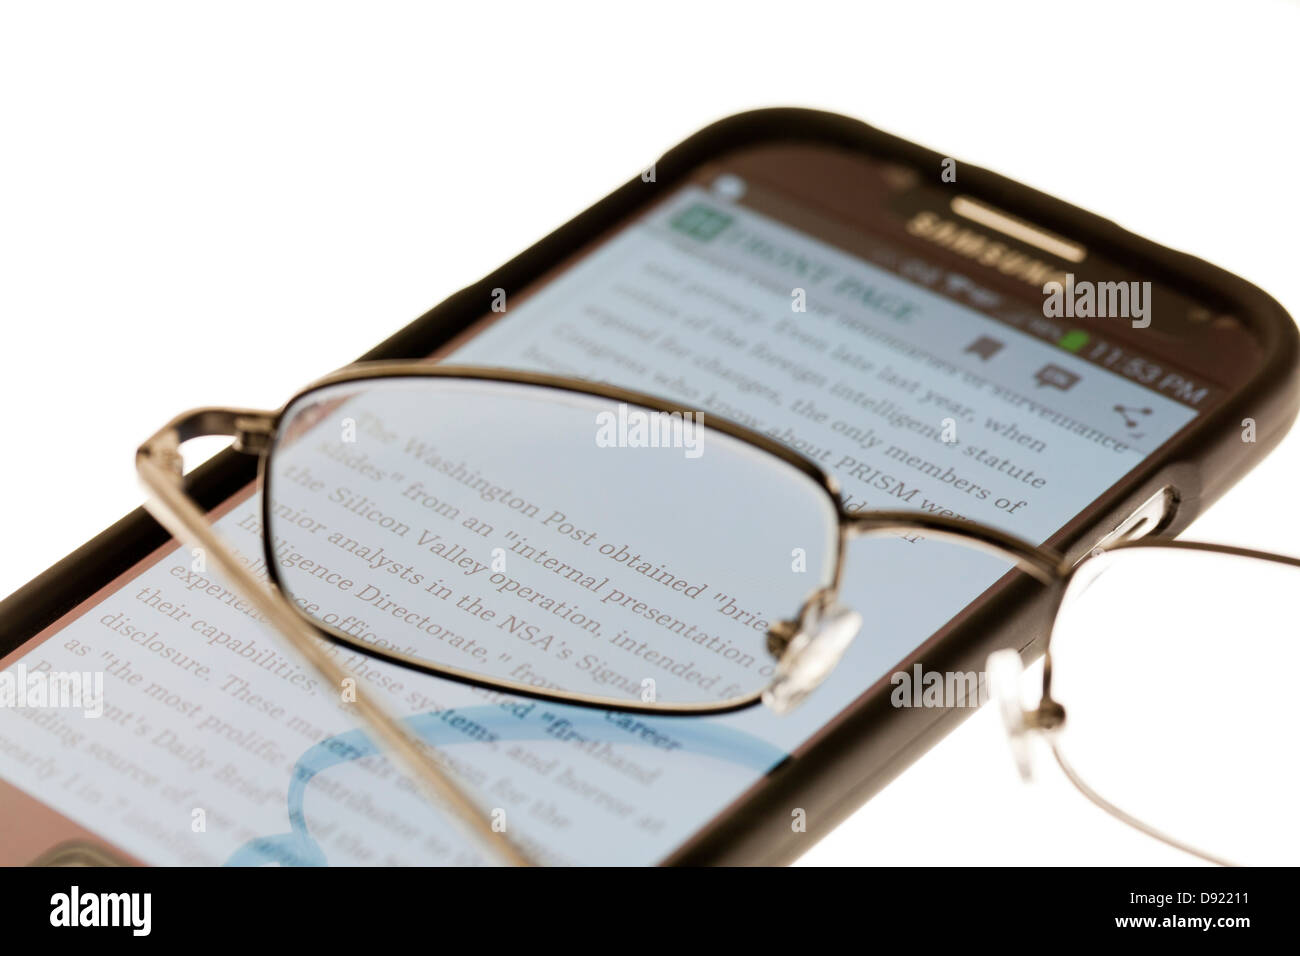 Reading glasses on smart phone - Stock Image